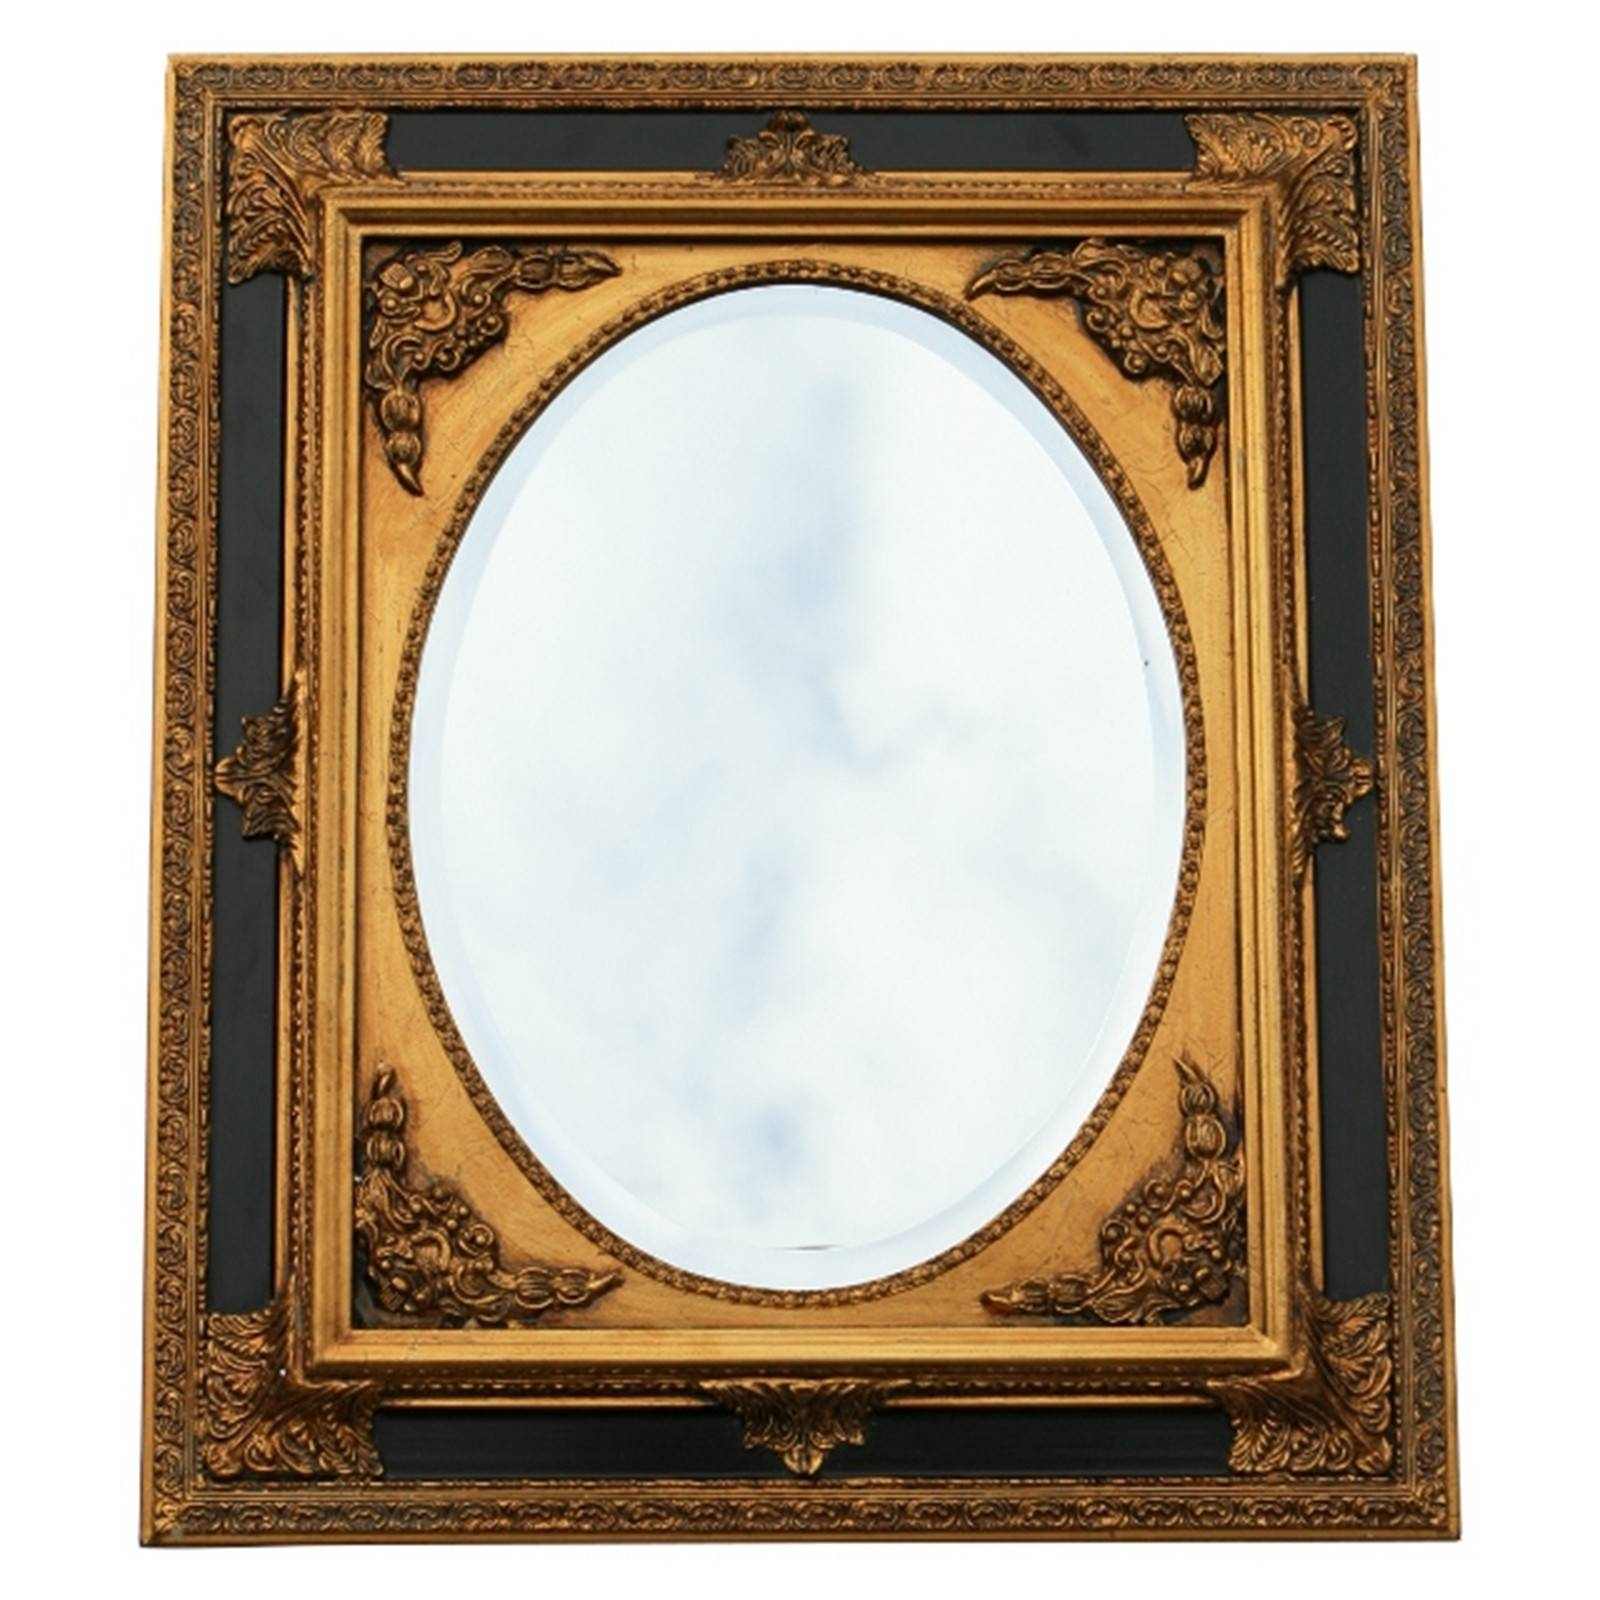 Baroque Wall Mirror Oval Ornate Frame 50X60/ 20X24 Inches Antique with Black Baroque Mirrors (Image 6 of 25)